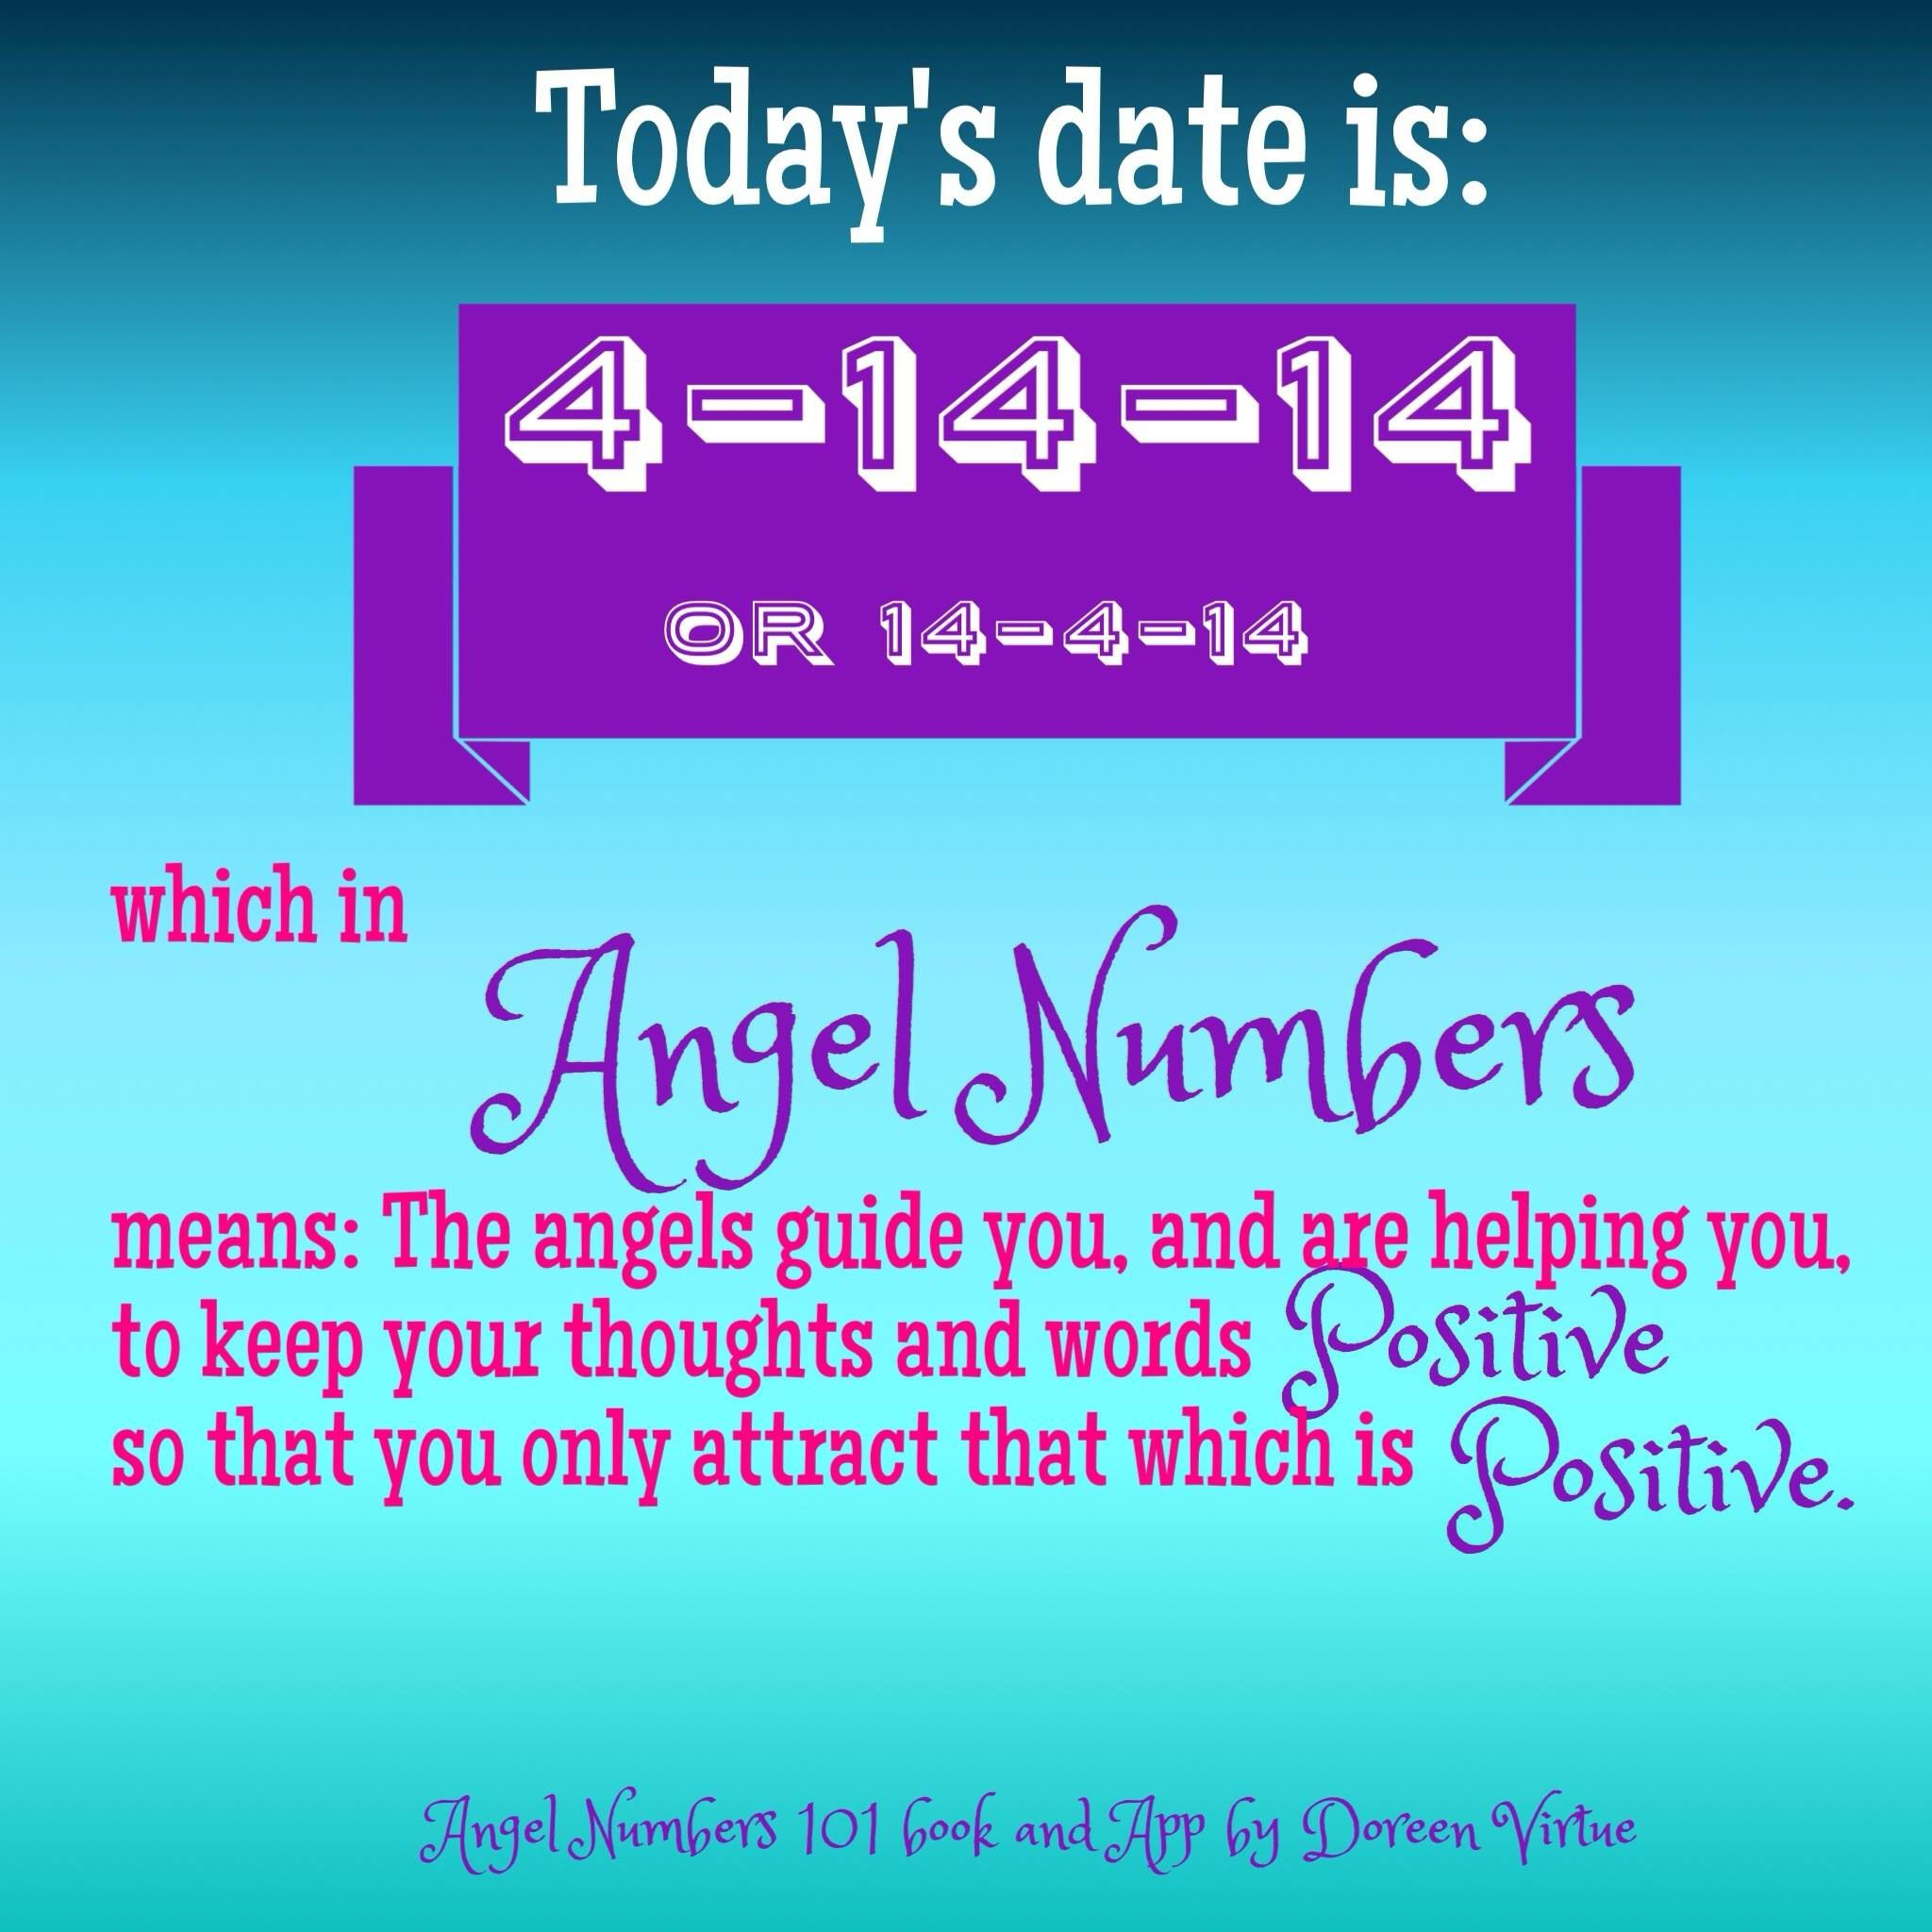 5555 meaning doreen virtue - Find This Pin And More On Angel Number Meanings By Doreen Virtue By Petisonline